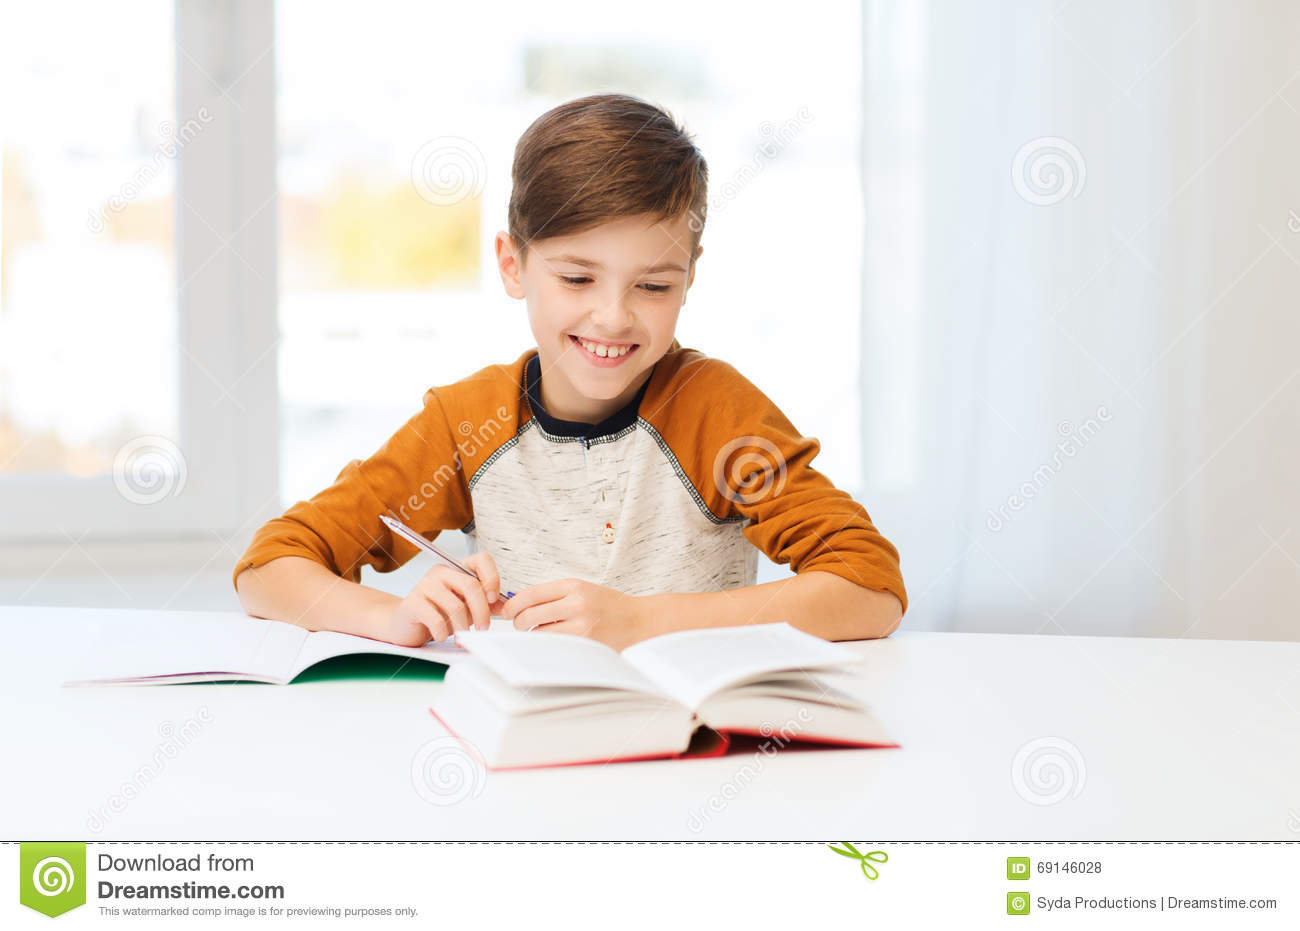 Educated Person Essay